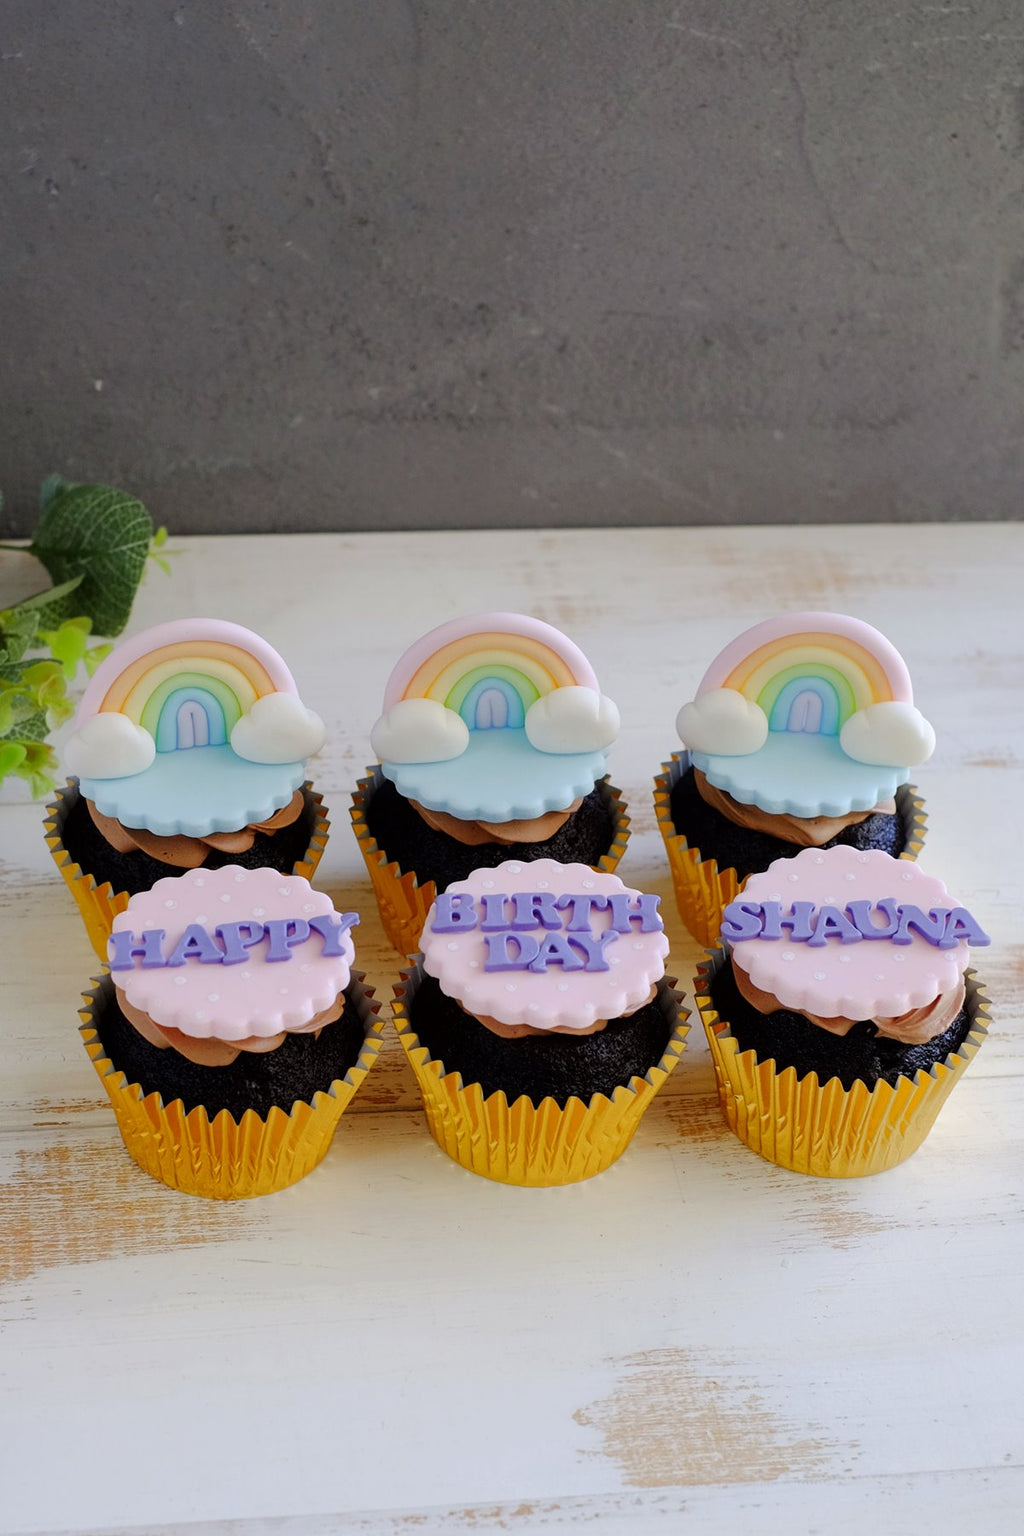 Rainbow Fondant Cupcakes (From $6.38/Pc)